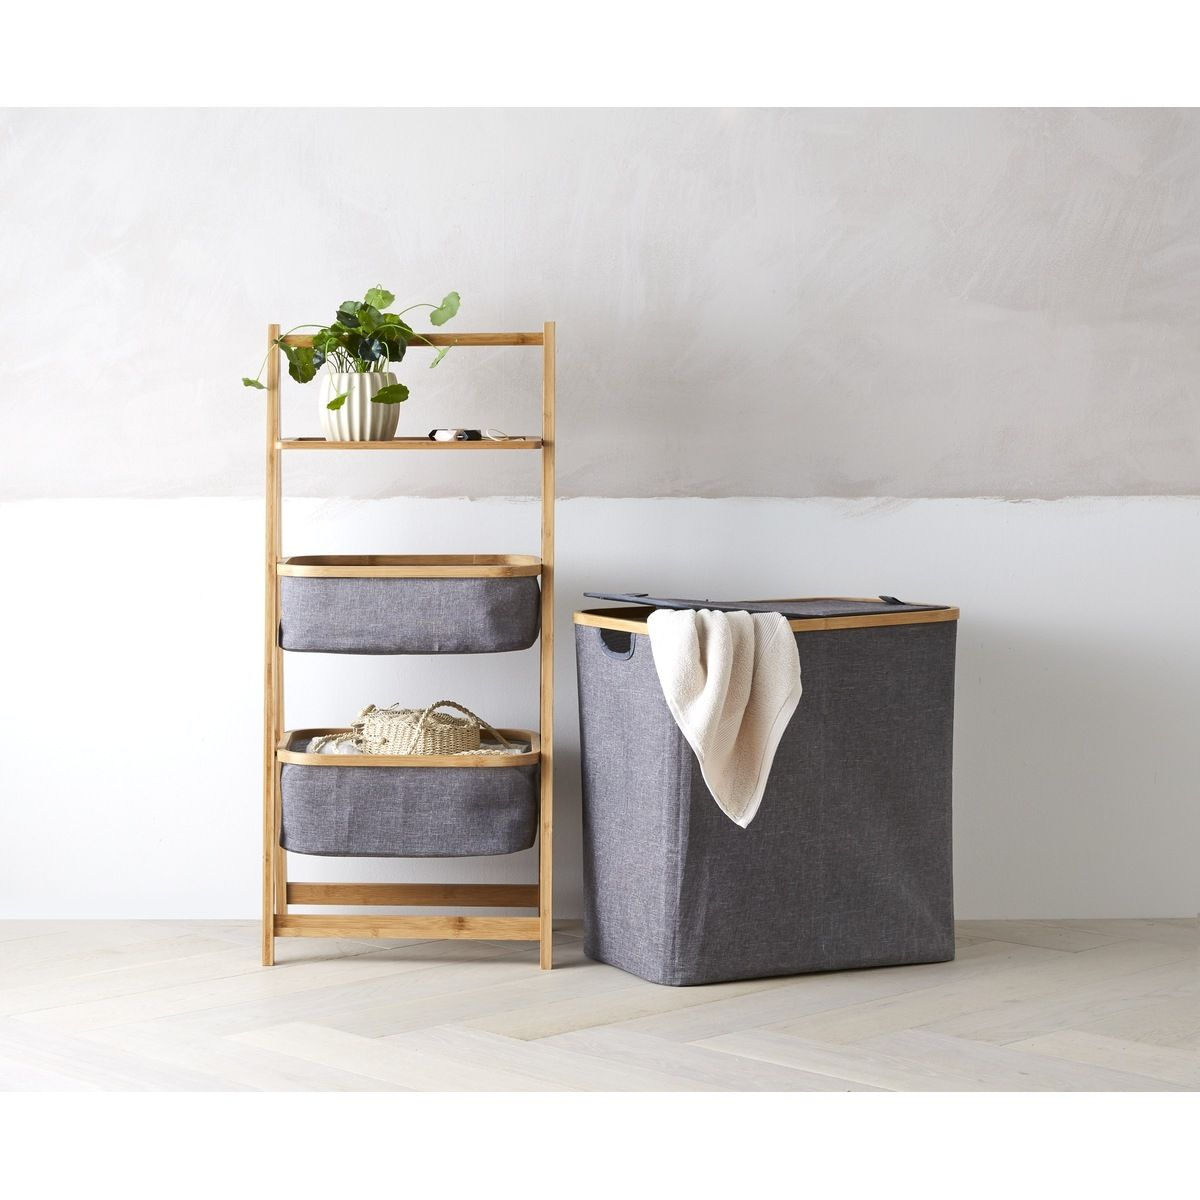 Twin Laundry Hamper With Bamboo Frame Storage Caddy Laundry Hamper Bamboo Frame